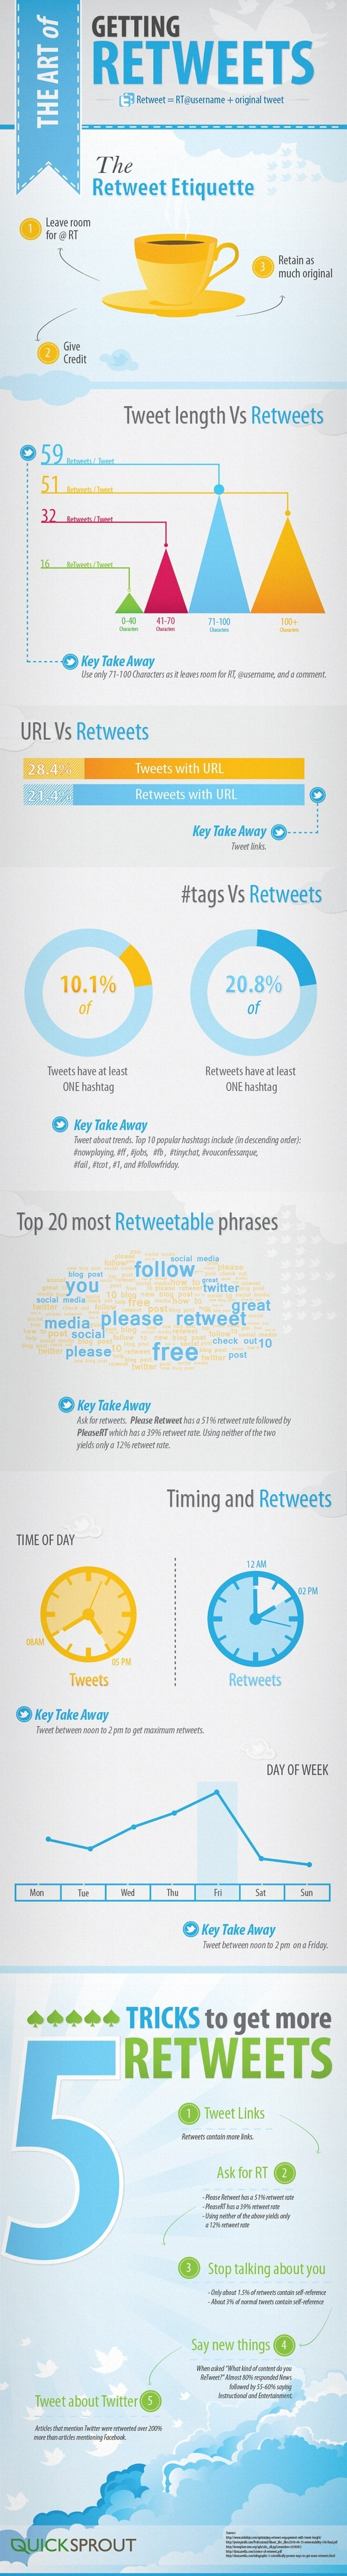 How to increase Retweets